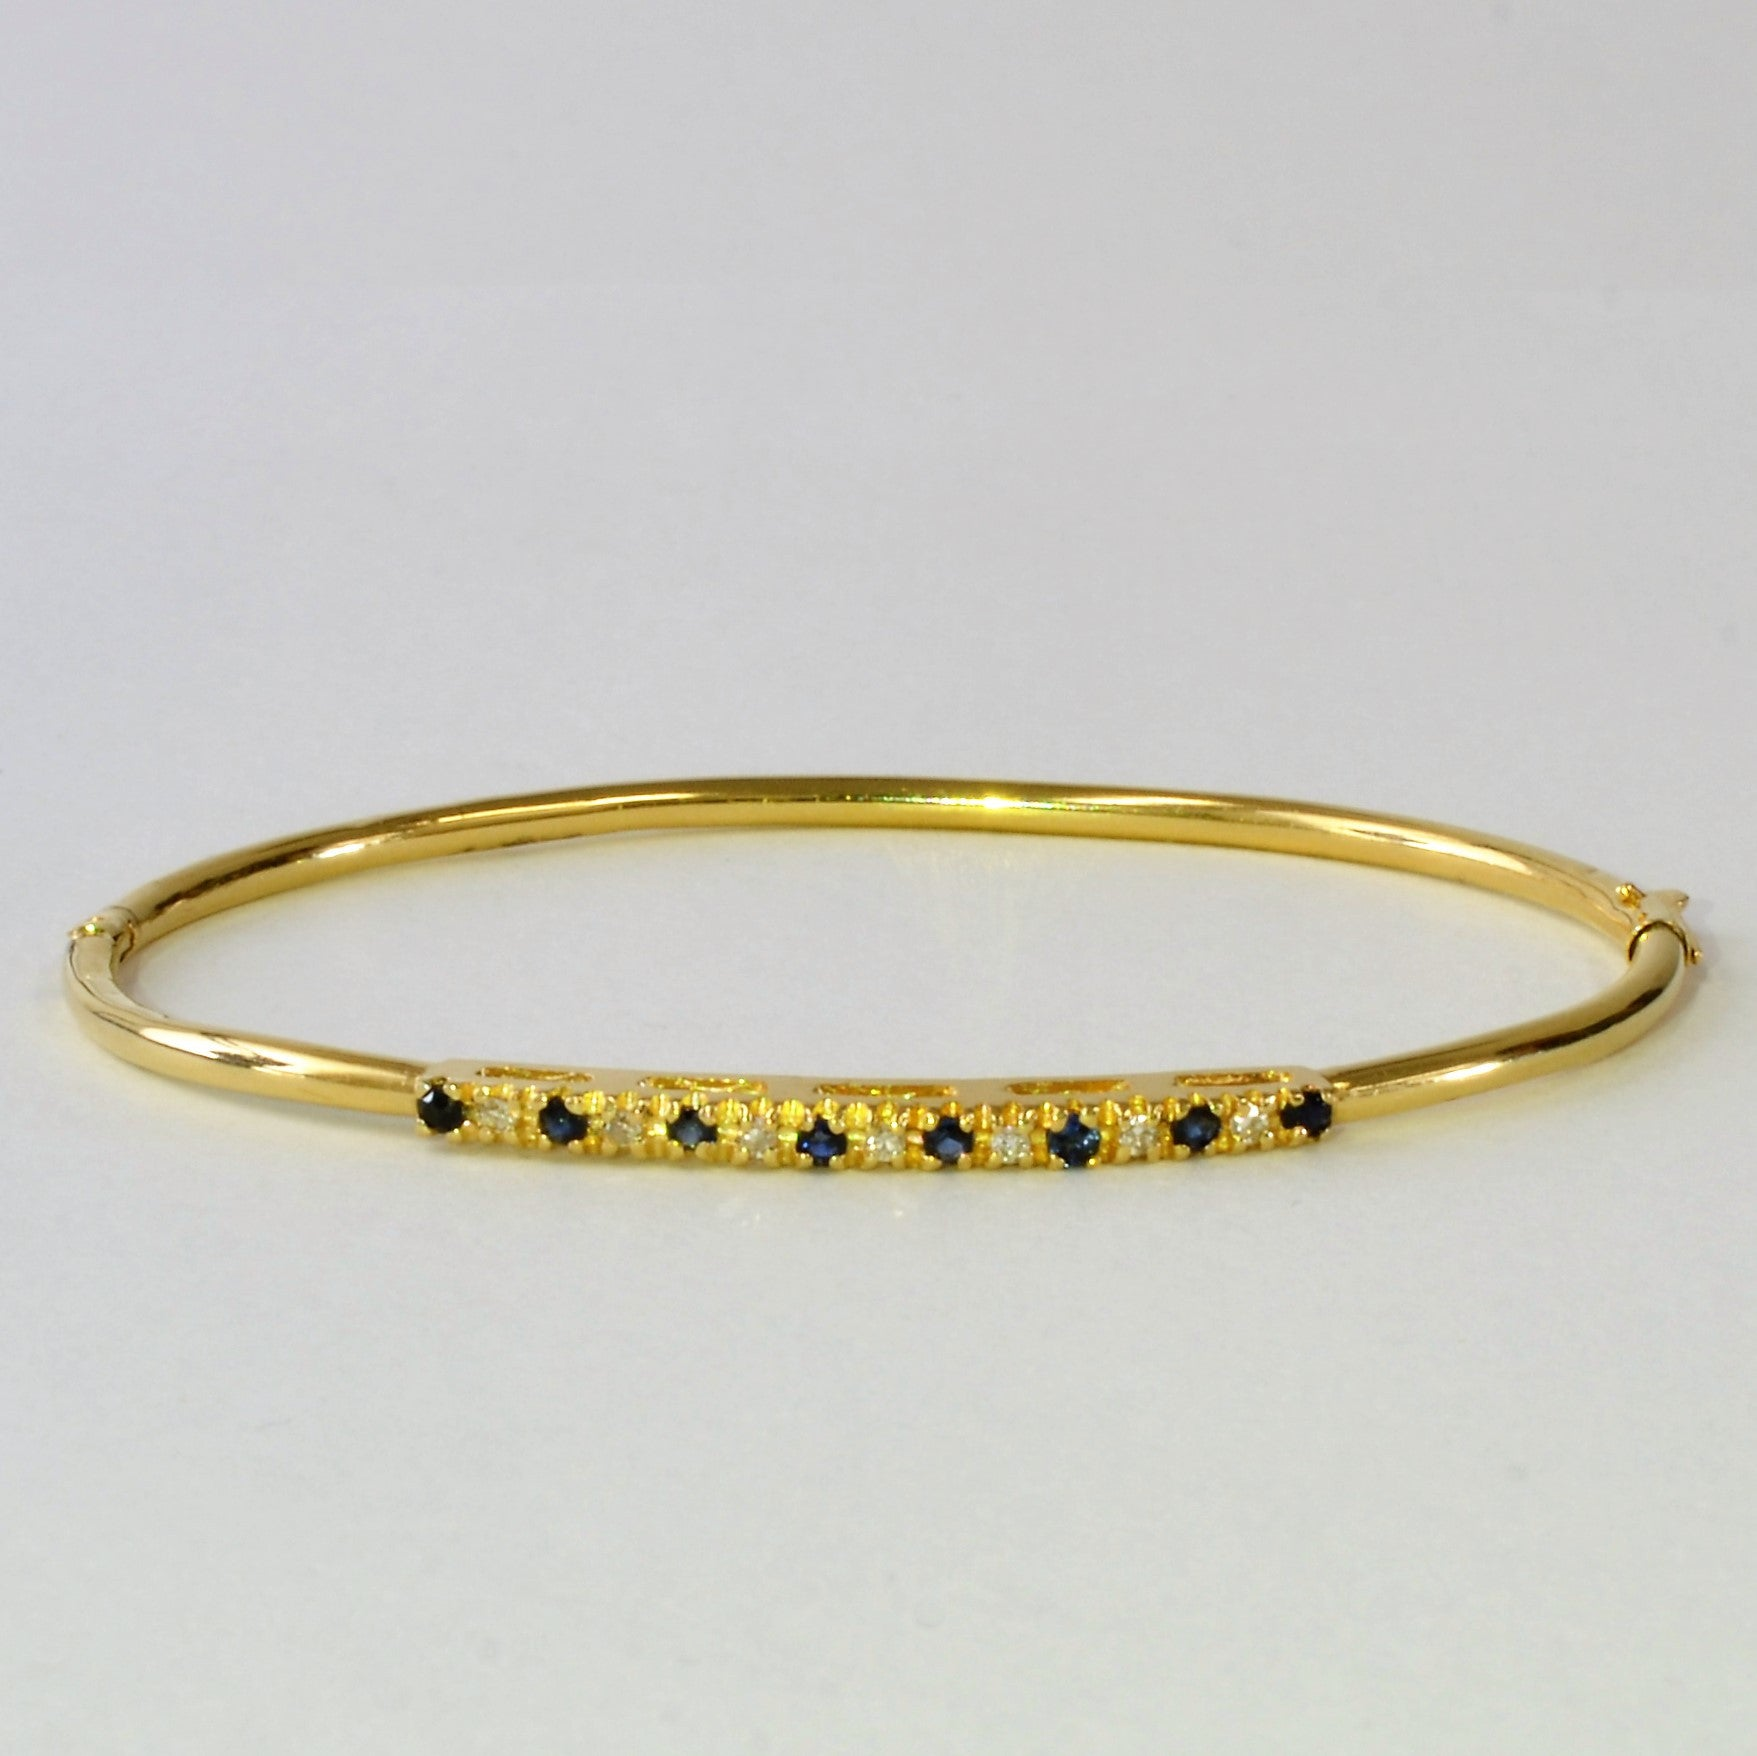 bracelet boylerpf diamond bbangle baste edwardian bangle products paste bangles sapphire victorian